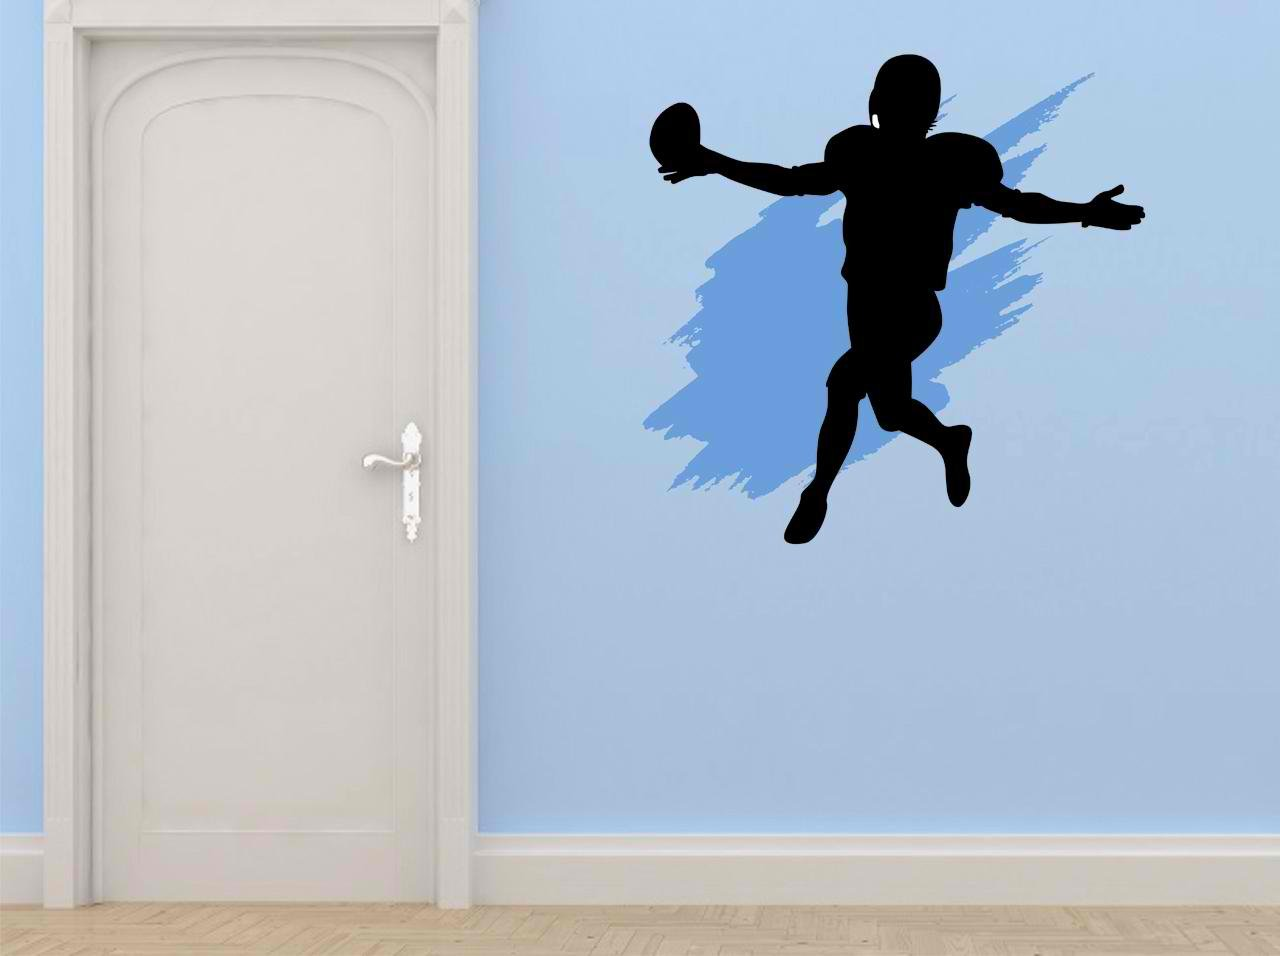 20 by 20-Inch Design with Vinyl Cryst 227 388 As Seen Football Sports Team Player Running Kicking Throwing Passing Mens Boys Kids Vinyl Wall Decal Art As Seen